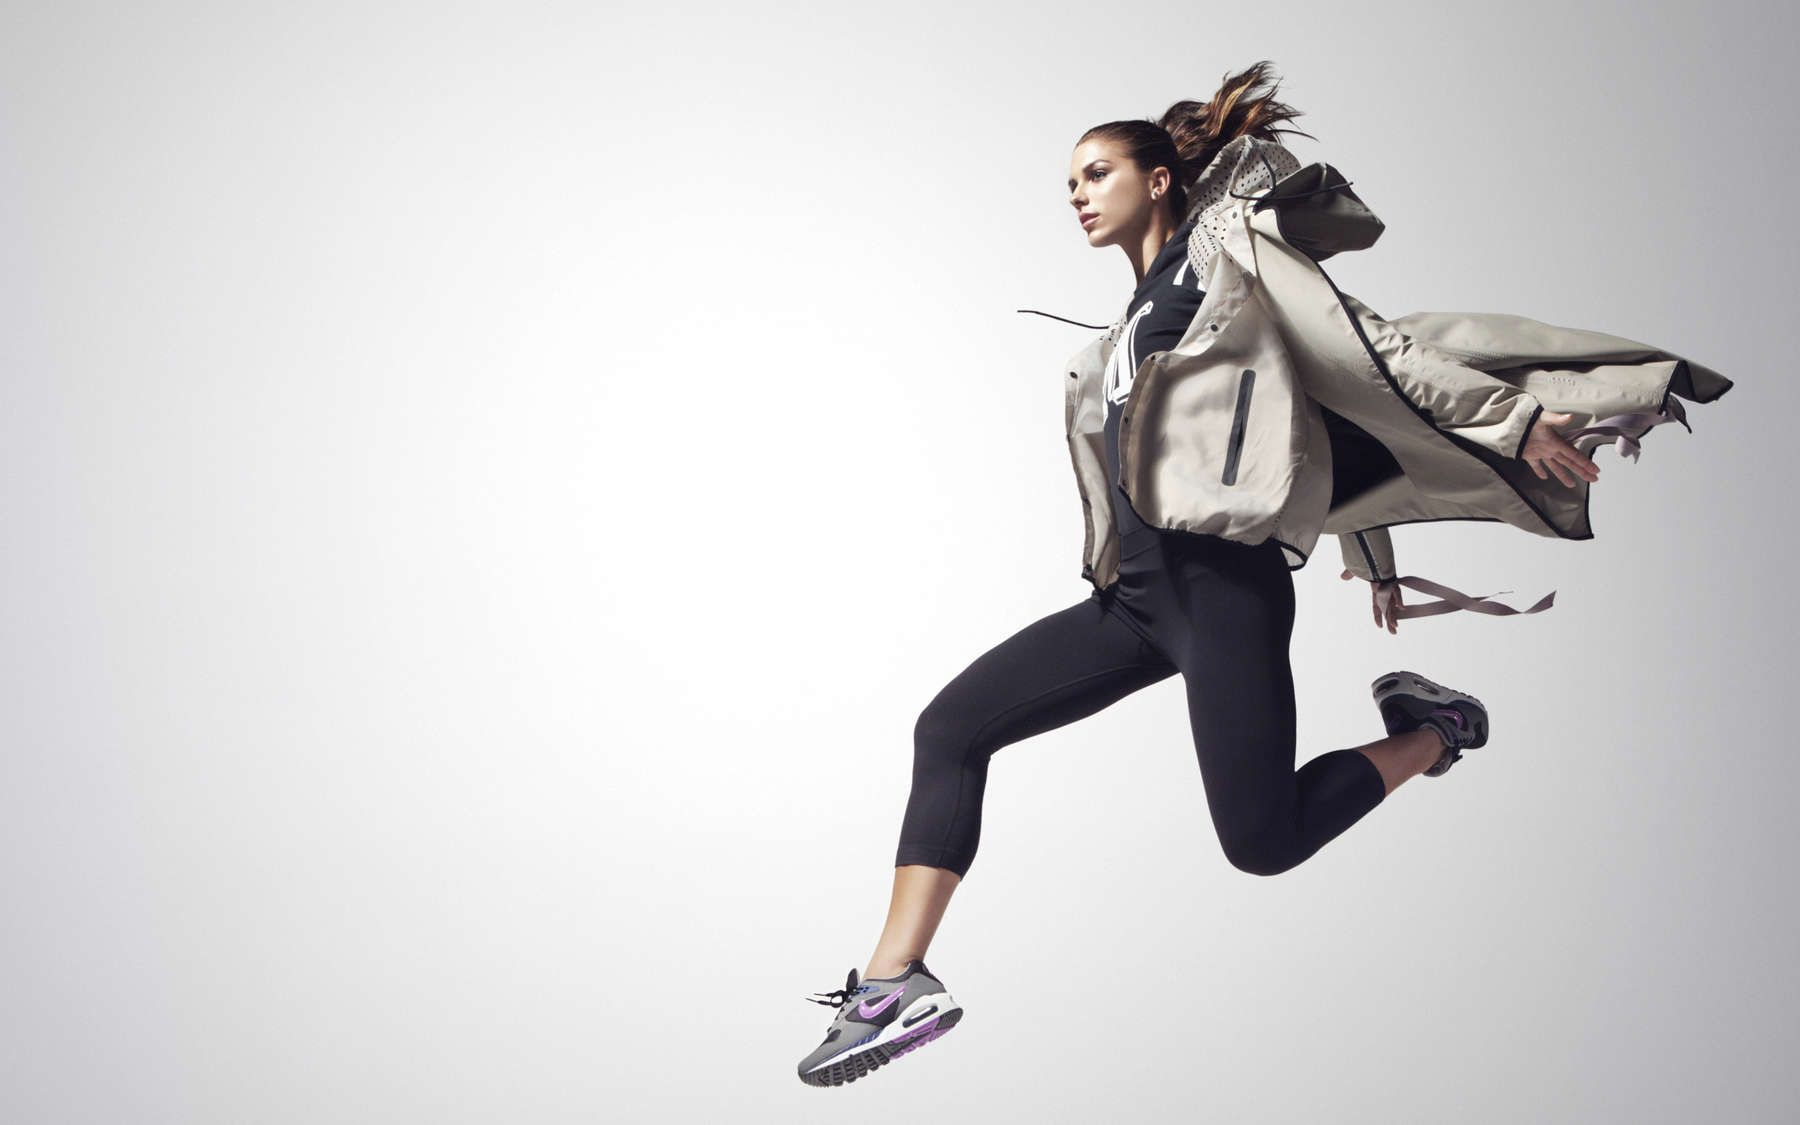 NIKE, Inc. - Nike Sportswear Pinnacle Collection infuses craft with Nike  Running DNA